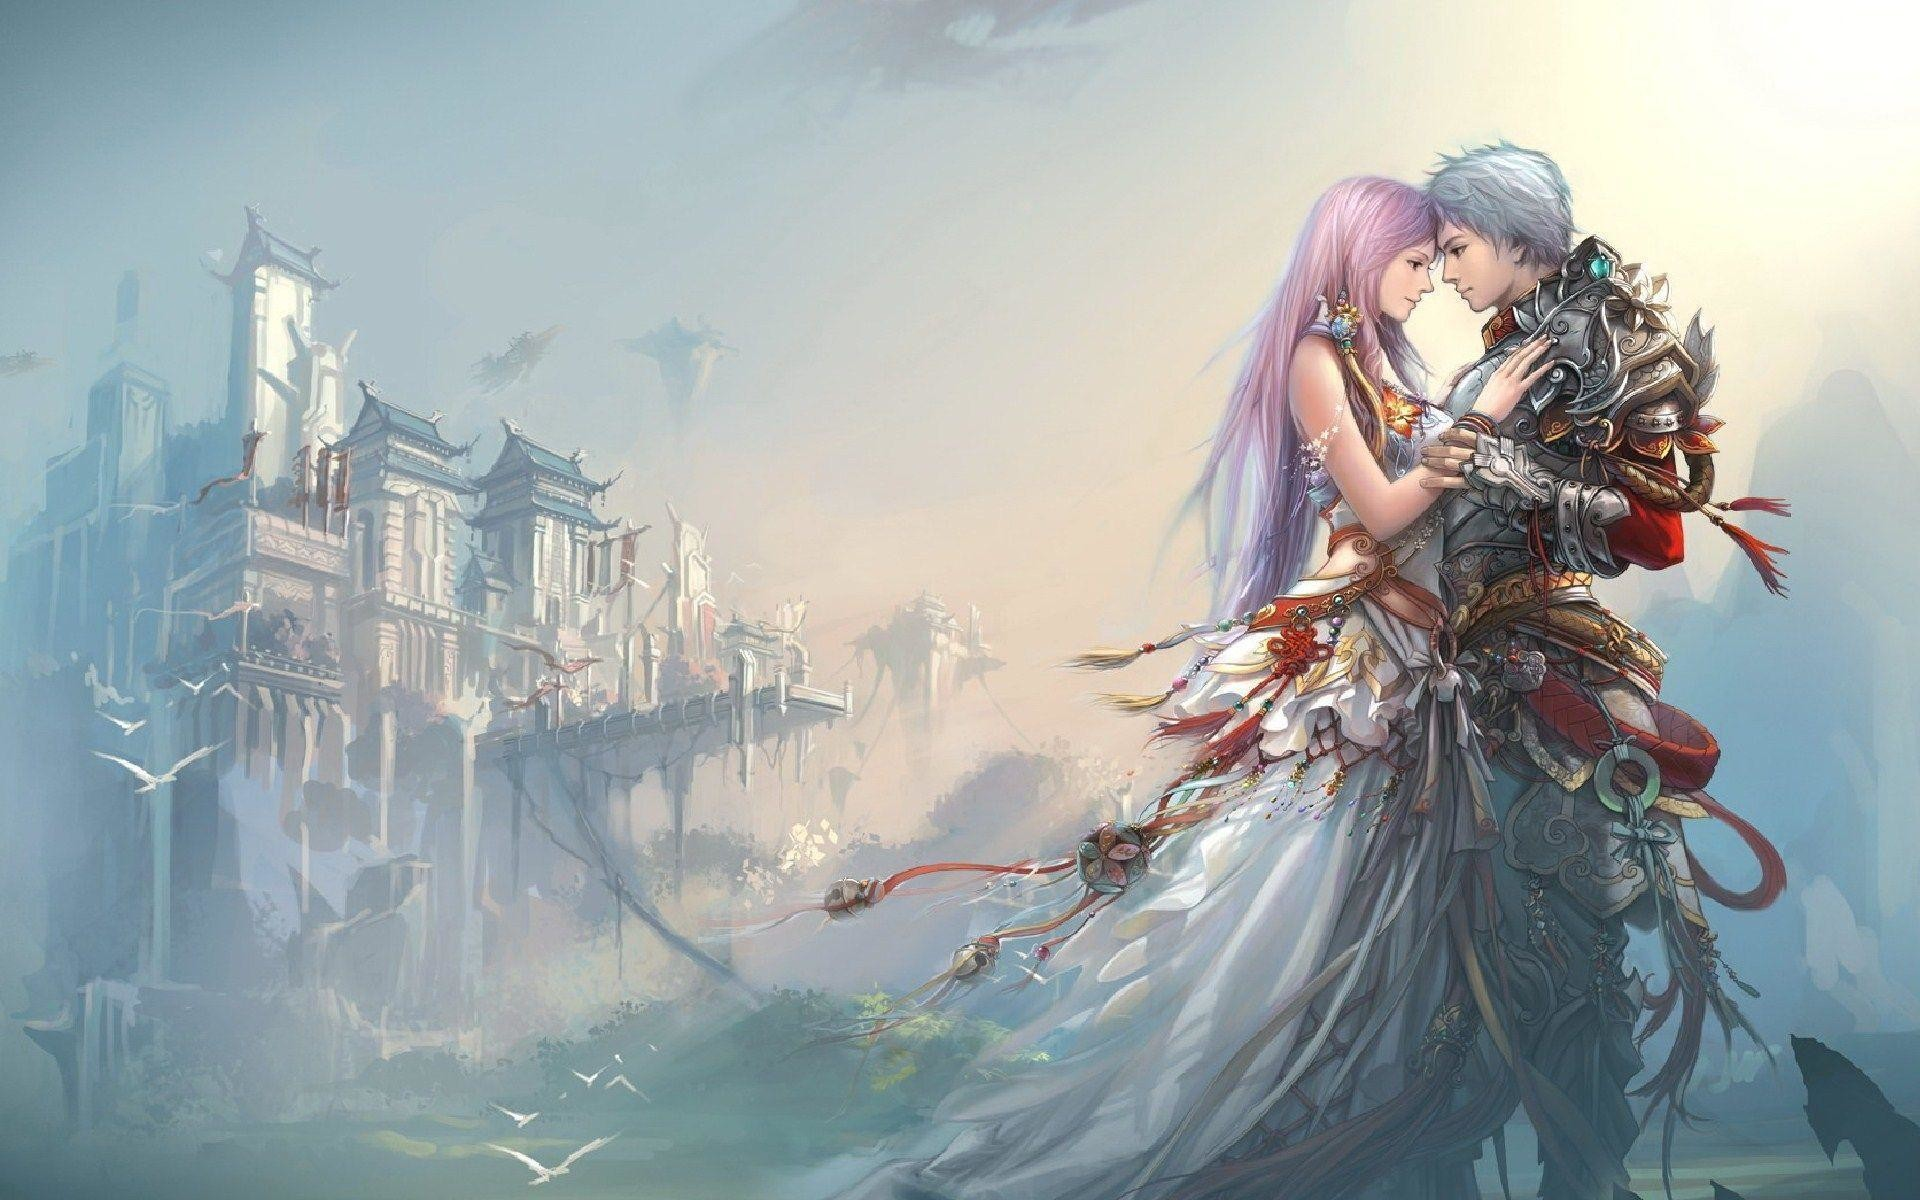 1920x1200 <b>Romantic Anime Wallpapers</b> - WallpaperSafari